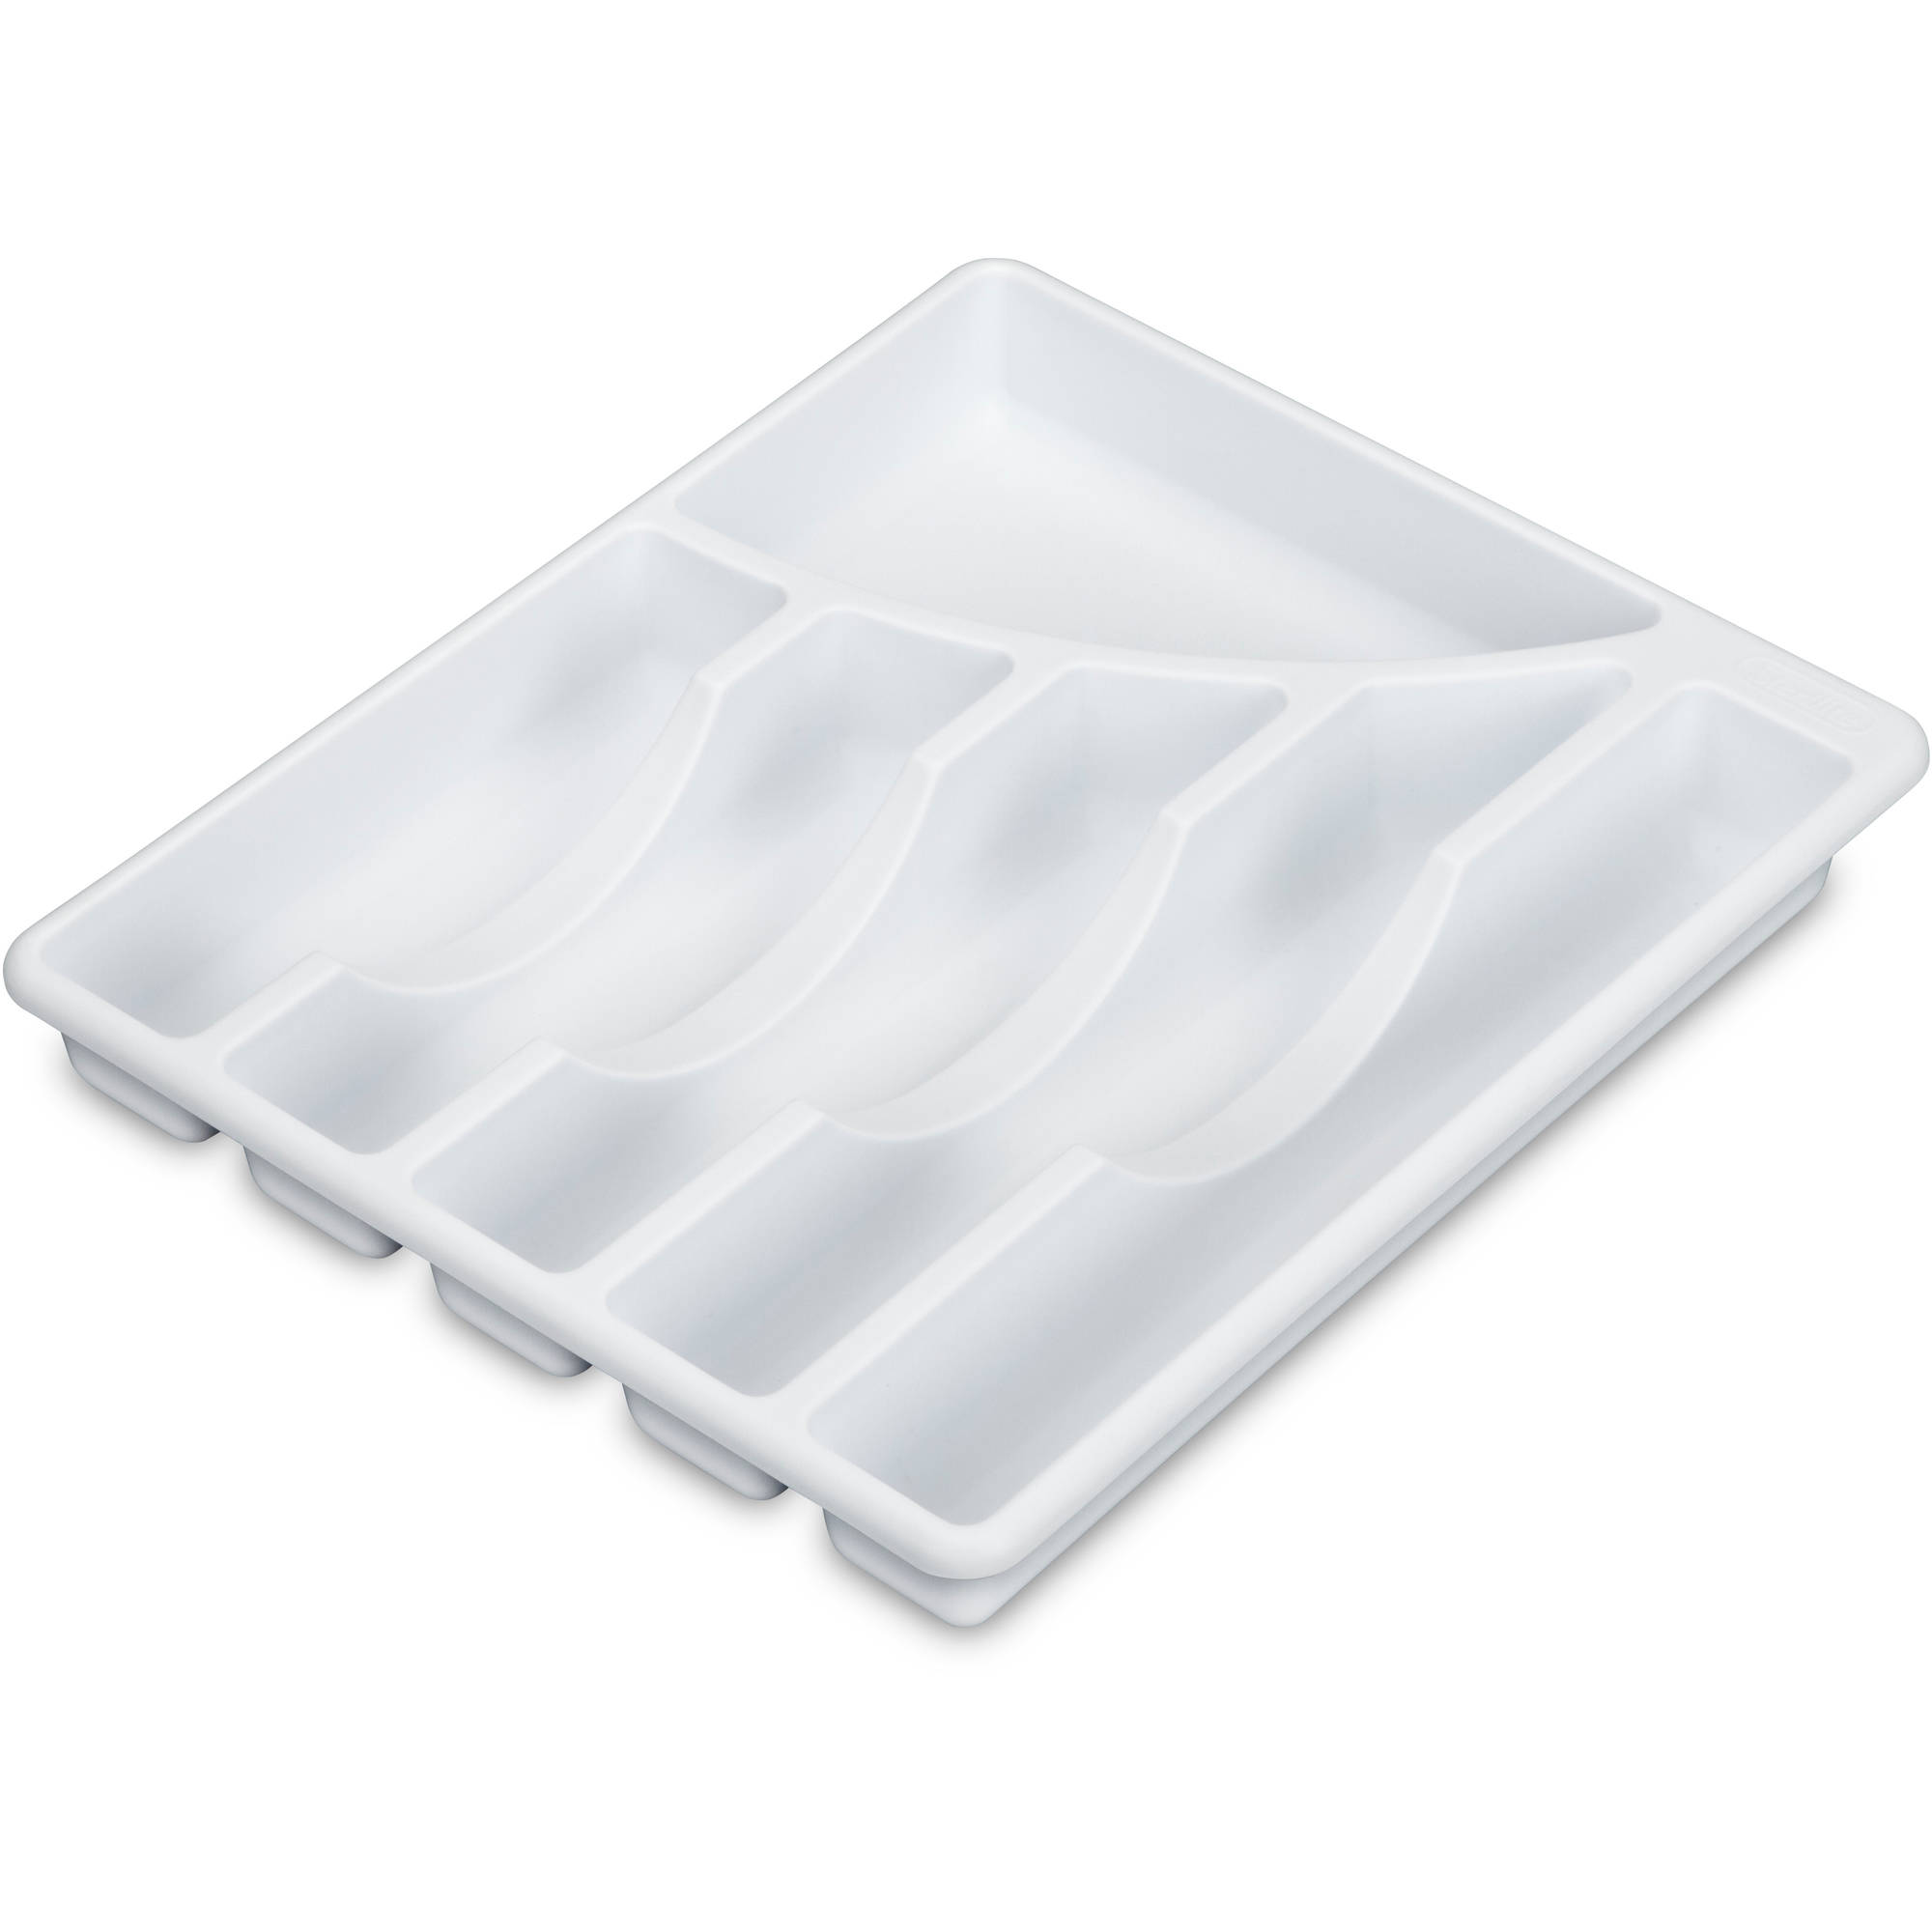 Mainstays 6-Compartment Cutlery Tray, White